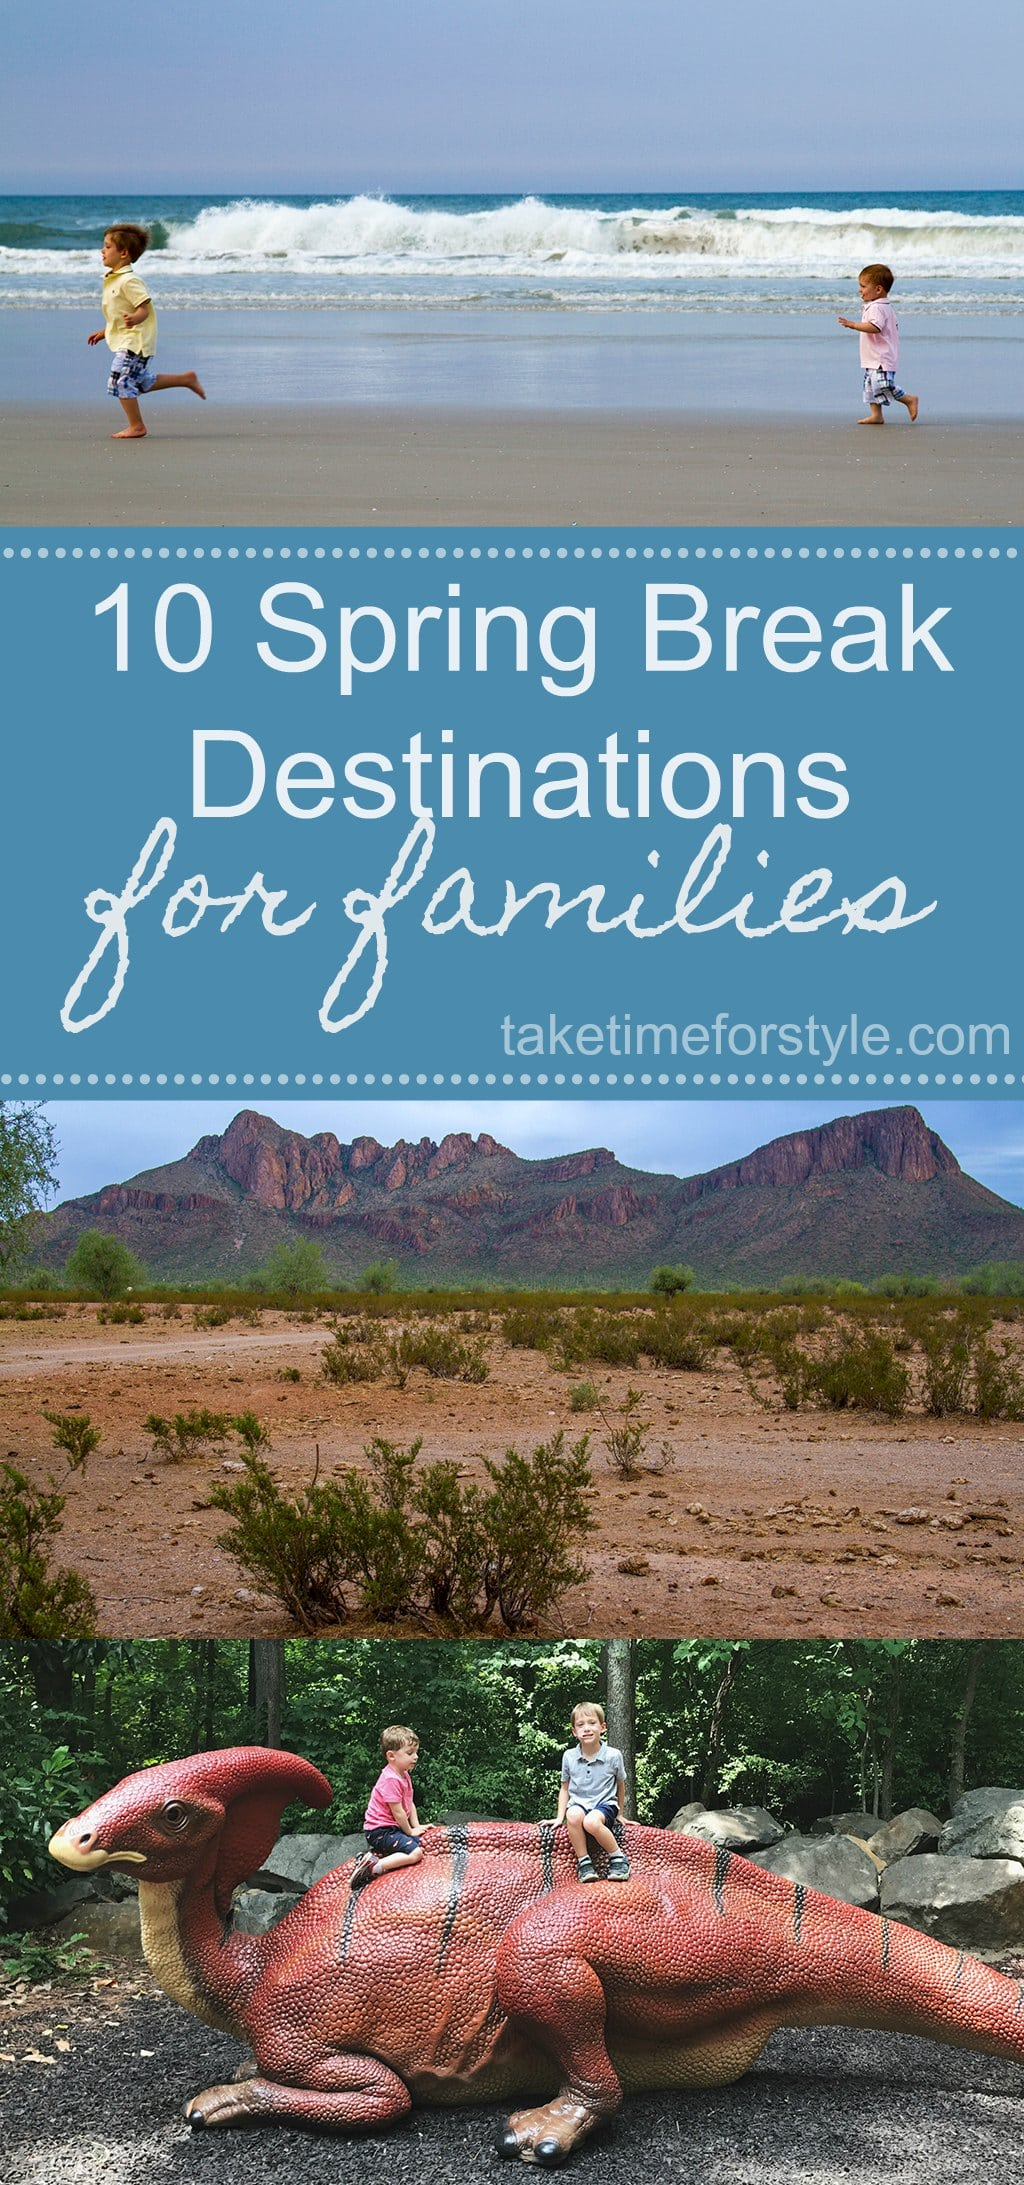 10 Spring Break Destinations